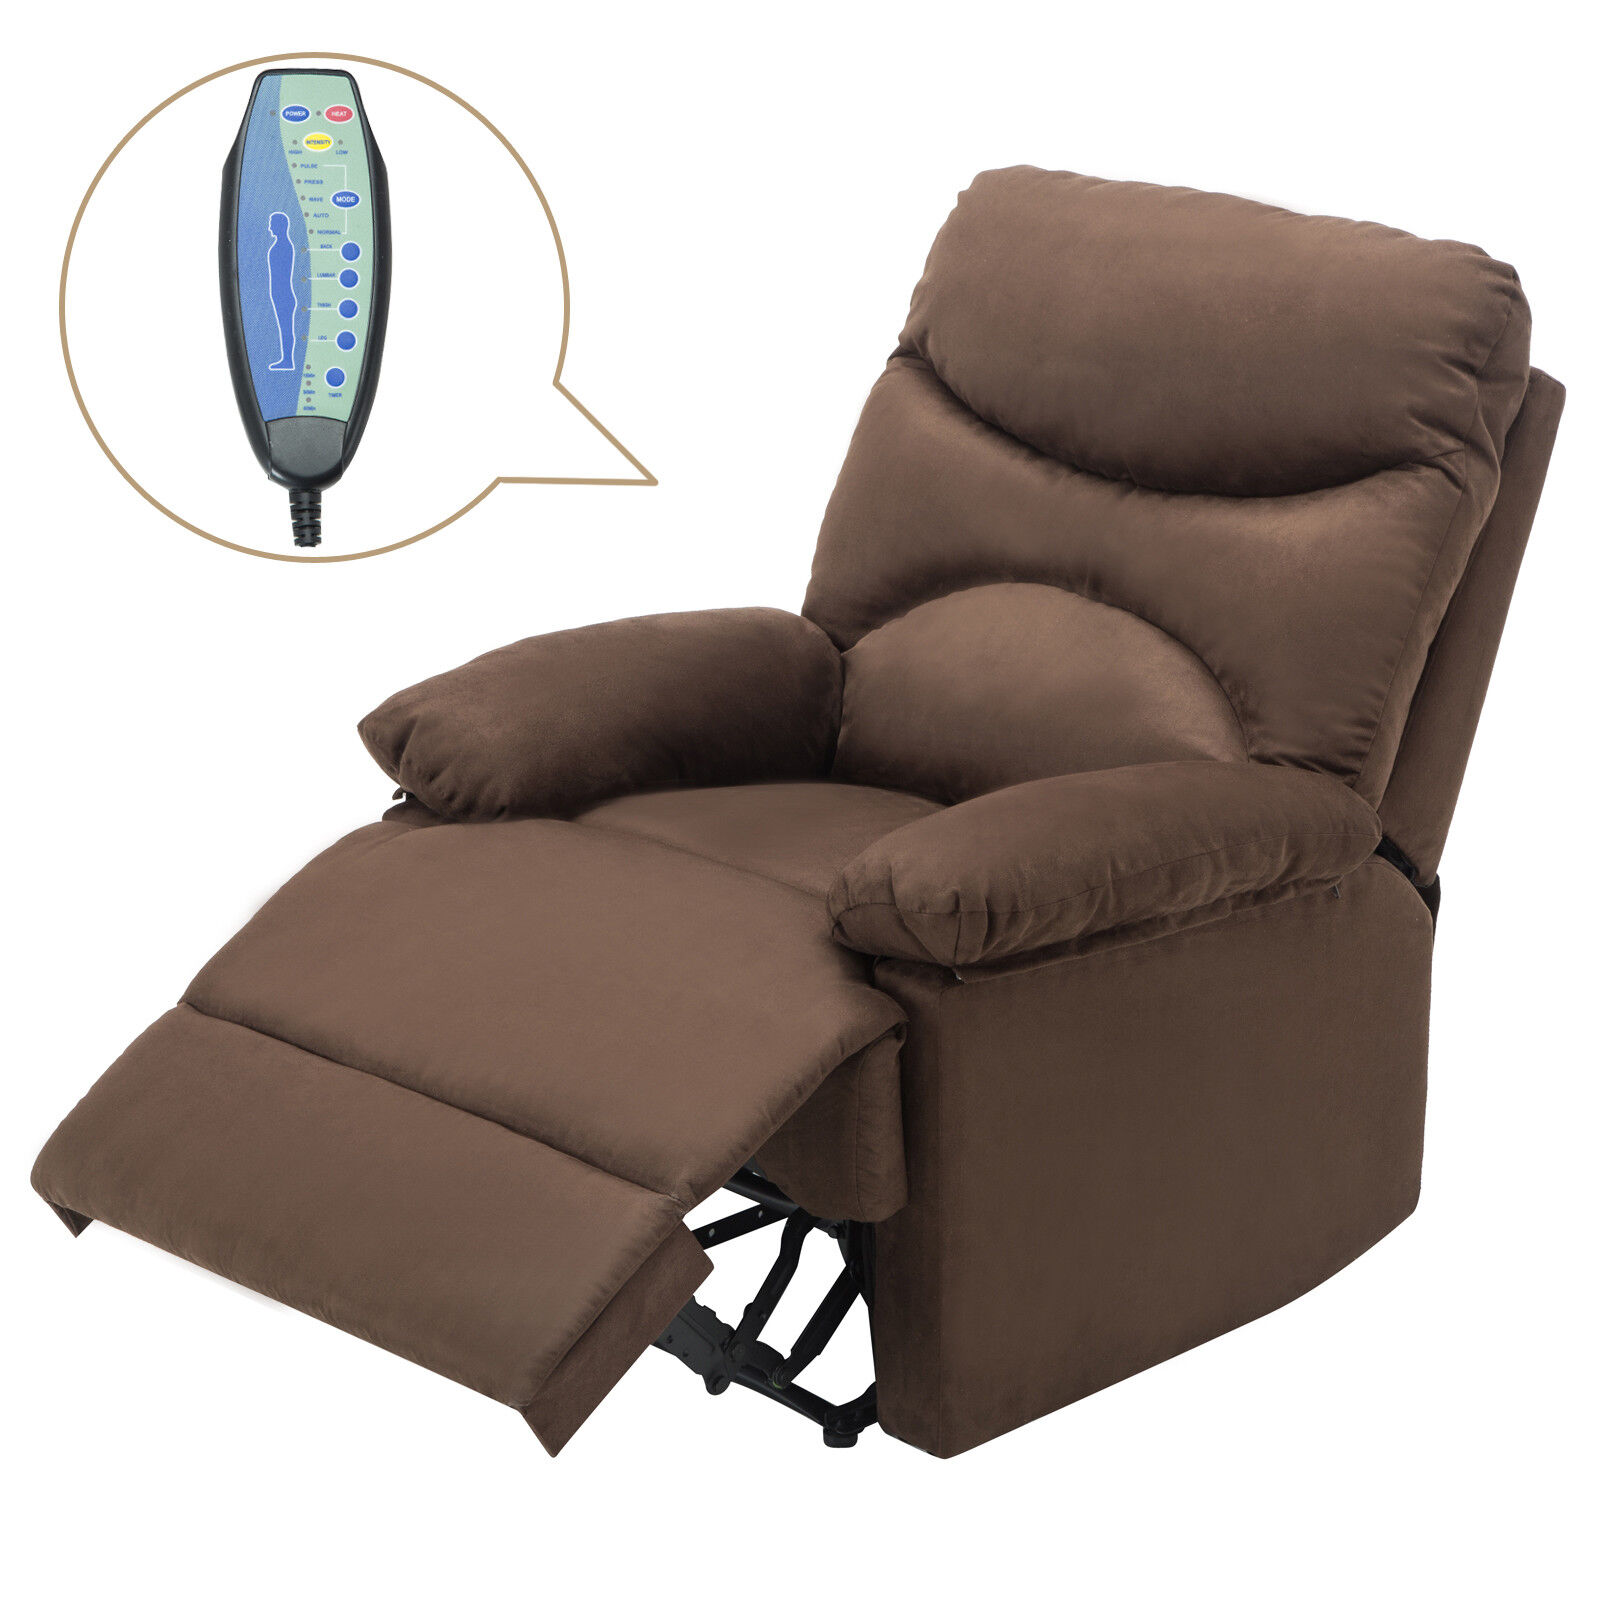 Awe Inspiring Details About Microfiber Massage Recliner Sofa Chair Ergonomic Lounge Swivel Heated W Control Machost Co Dining Chair Design Ideas Machostcouk